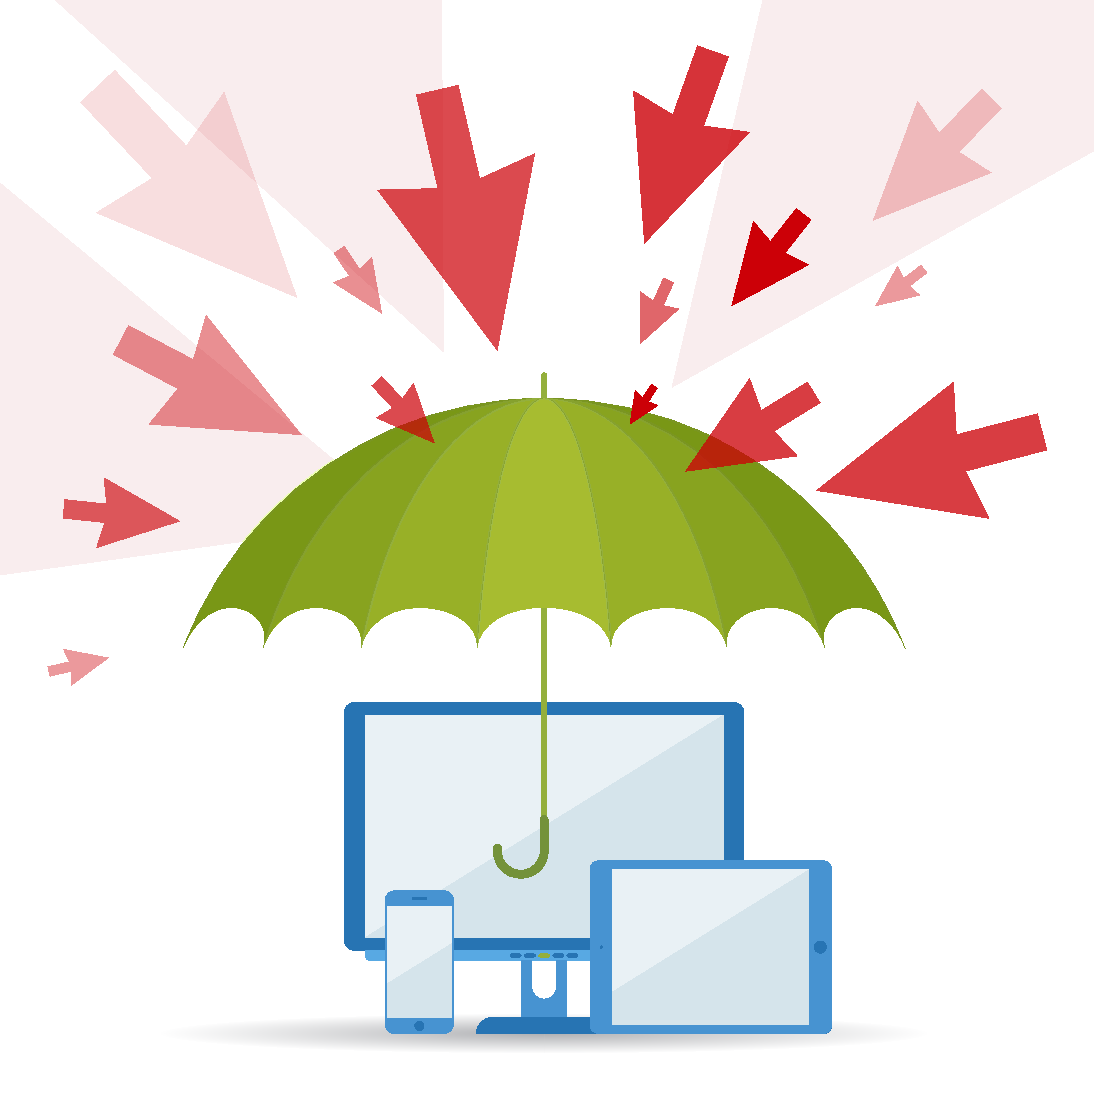 Ddos clipart graphic freeuse Distributed Denial of Service (DDoS) Attacks - GovOffice ... graphic freeuse